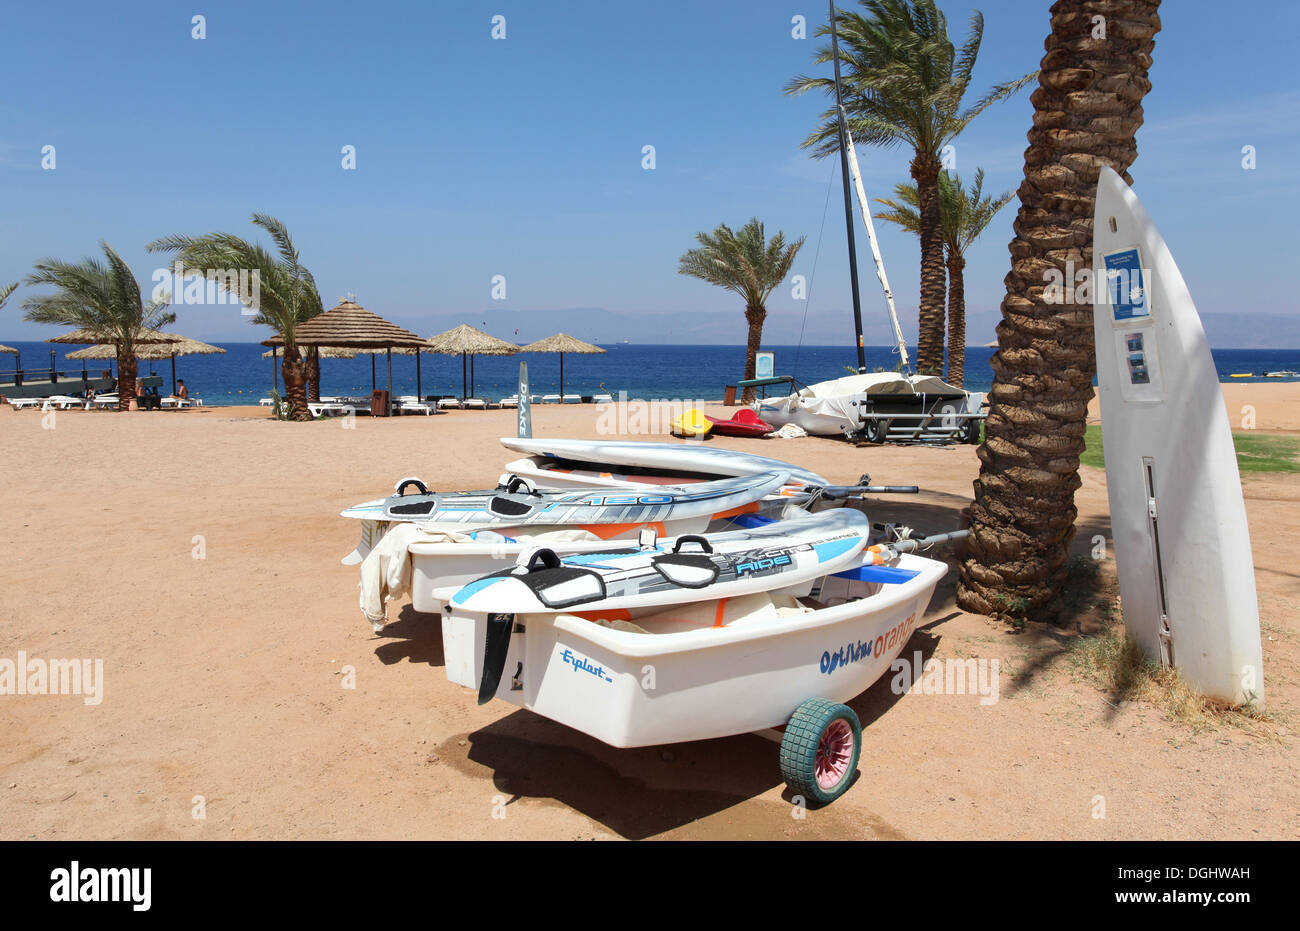 Red Sea, Aqaba, Jordan - Stock Image